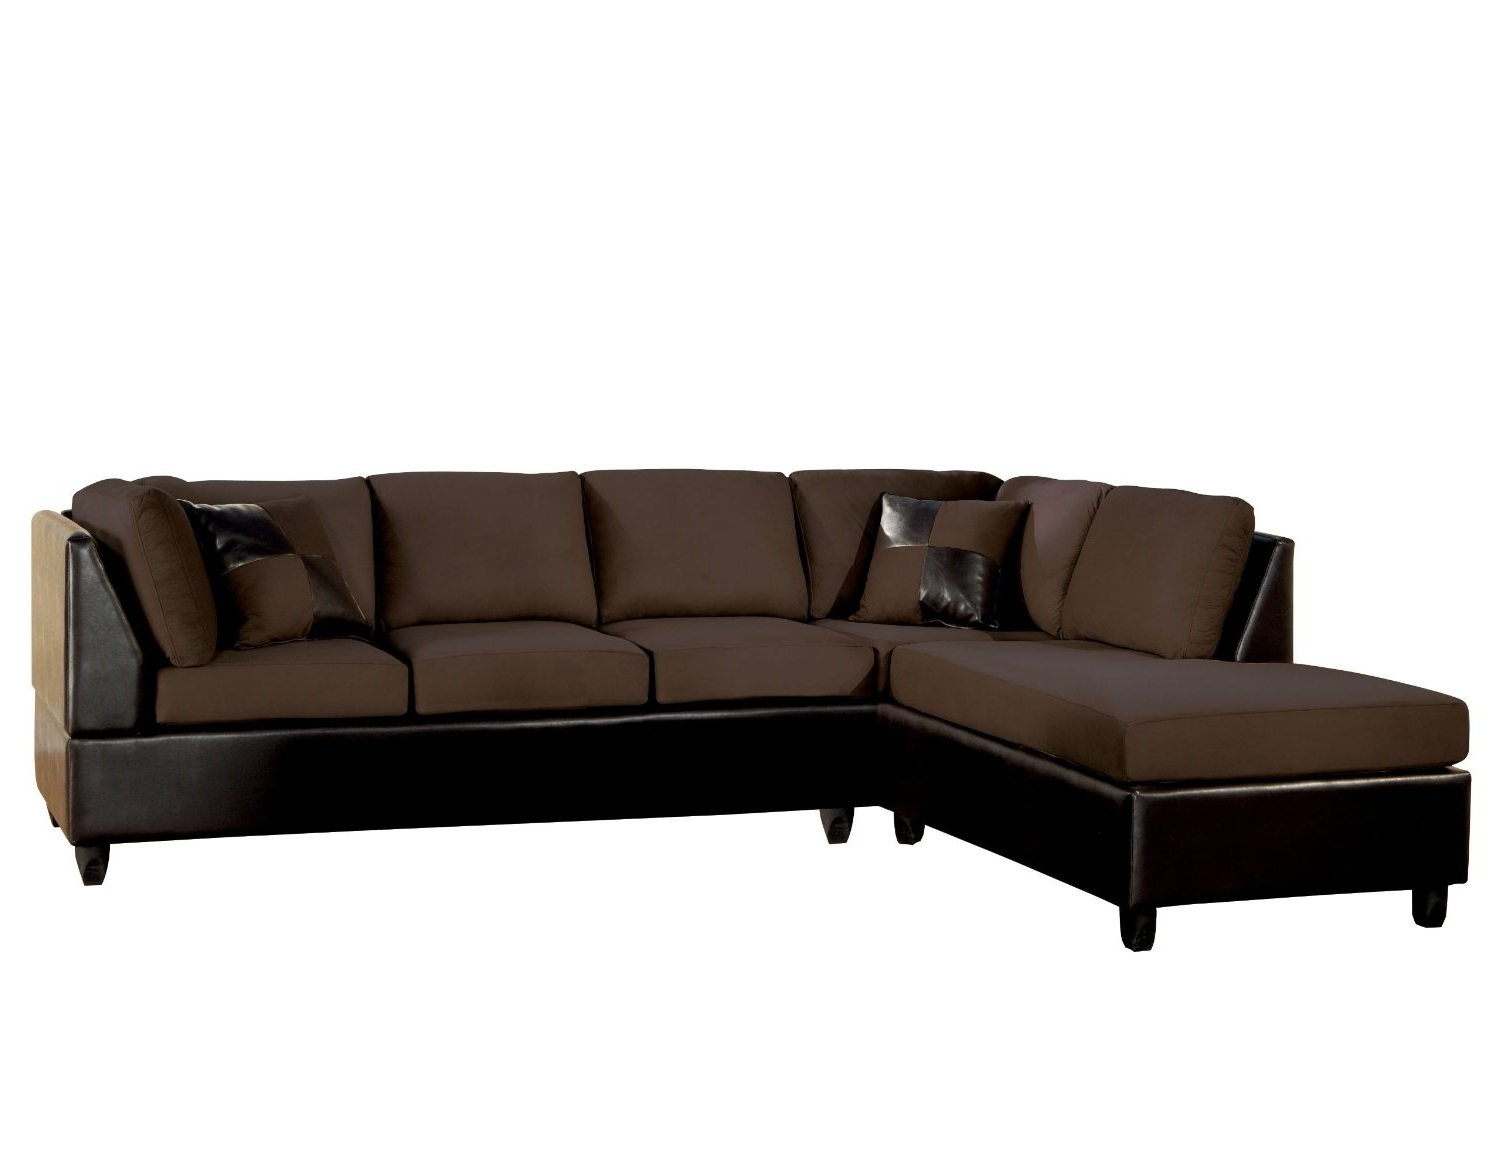 Ashley Furniture Sofa Bed Apartment Size Sleeper Sofa Sectional Regarding Current Chaise Sofa Sleepers (View 15 of 15)